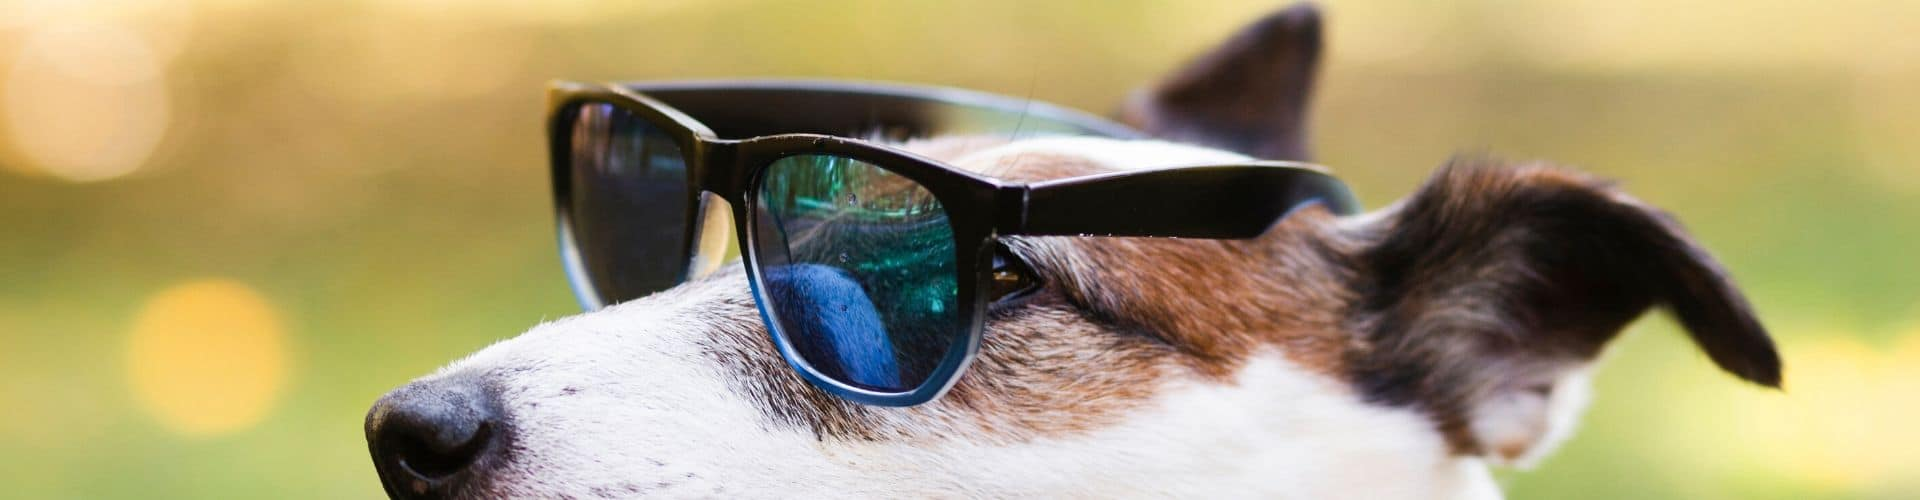 A dog wearing sunglasses looking very cool